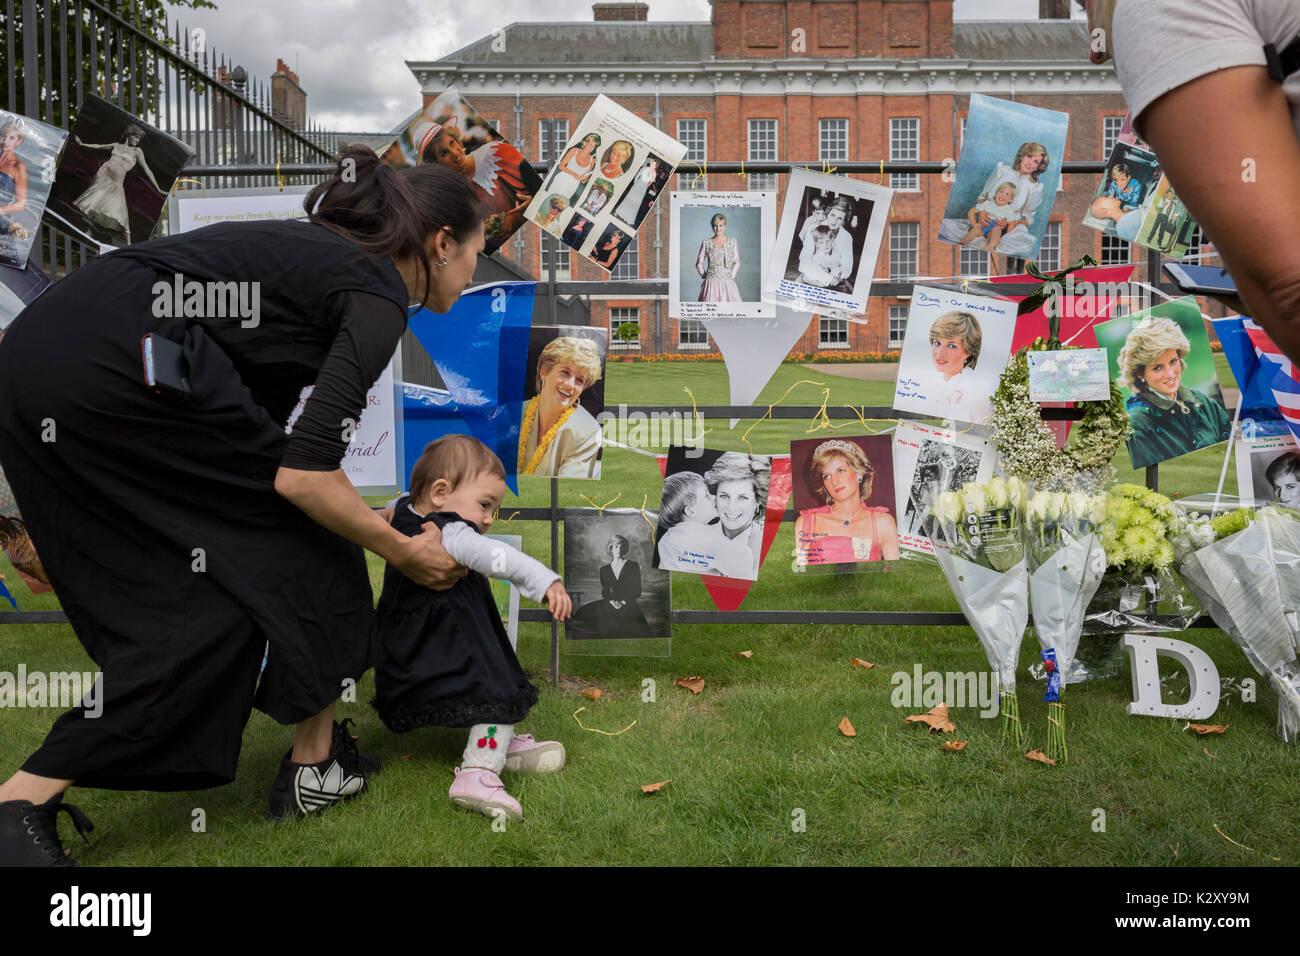 As crowds of royalist well-wishers gather, a spontaneous memorial of flowers, photos and memorabilia grows outside Kensington Palace, the royal residence of Princess Diana who died in a car crash in Paris exactly 20 years ago, on 31st August 2017, in London, England. In 1997 a sea of floral tributes also filled this area of the royal park as well as in the Mall where her funeral passed. Then, as now - a royalists mourned the People's Princess, a titled coined by the then Prime Minister Tony Blair. - Stock Image